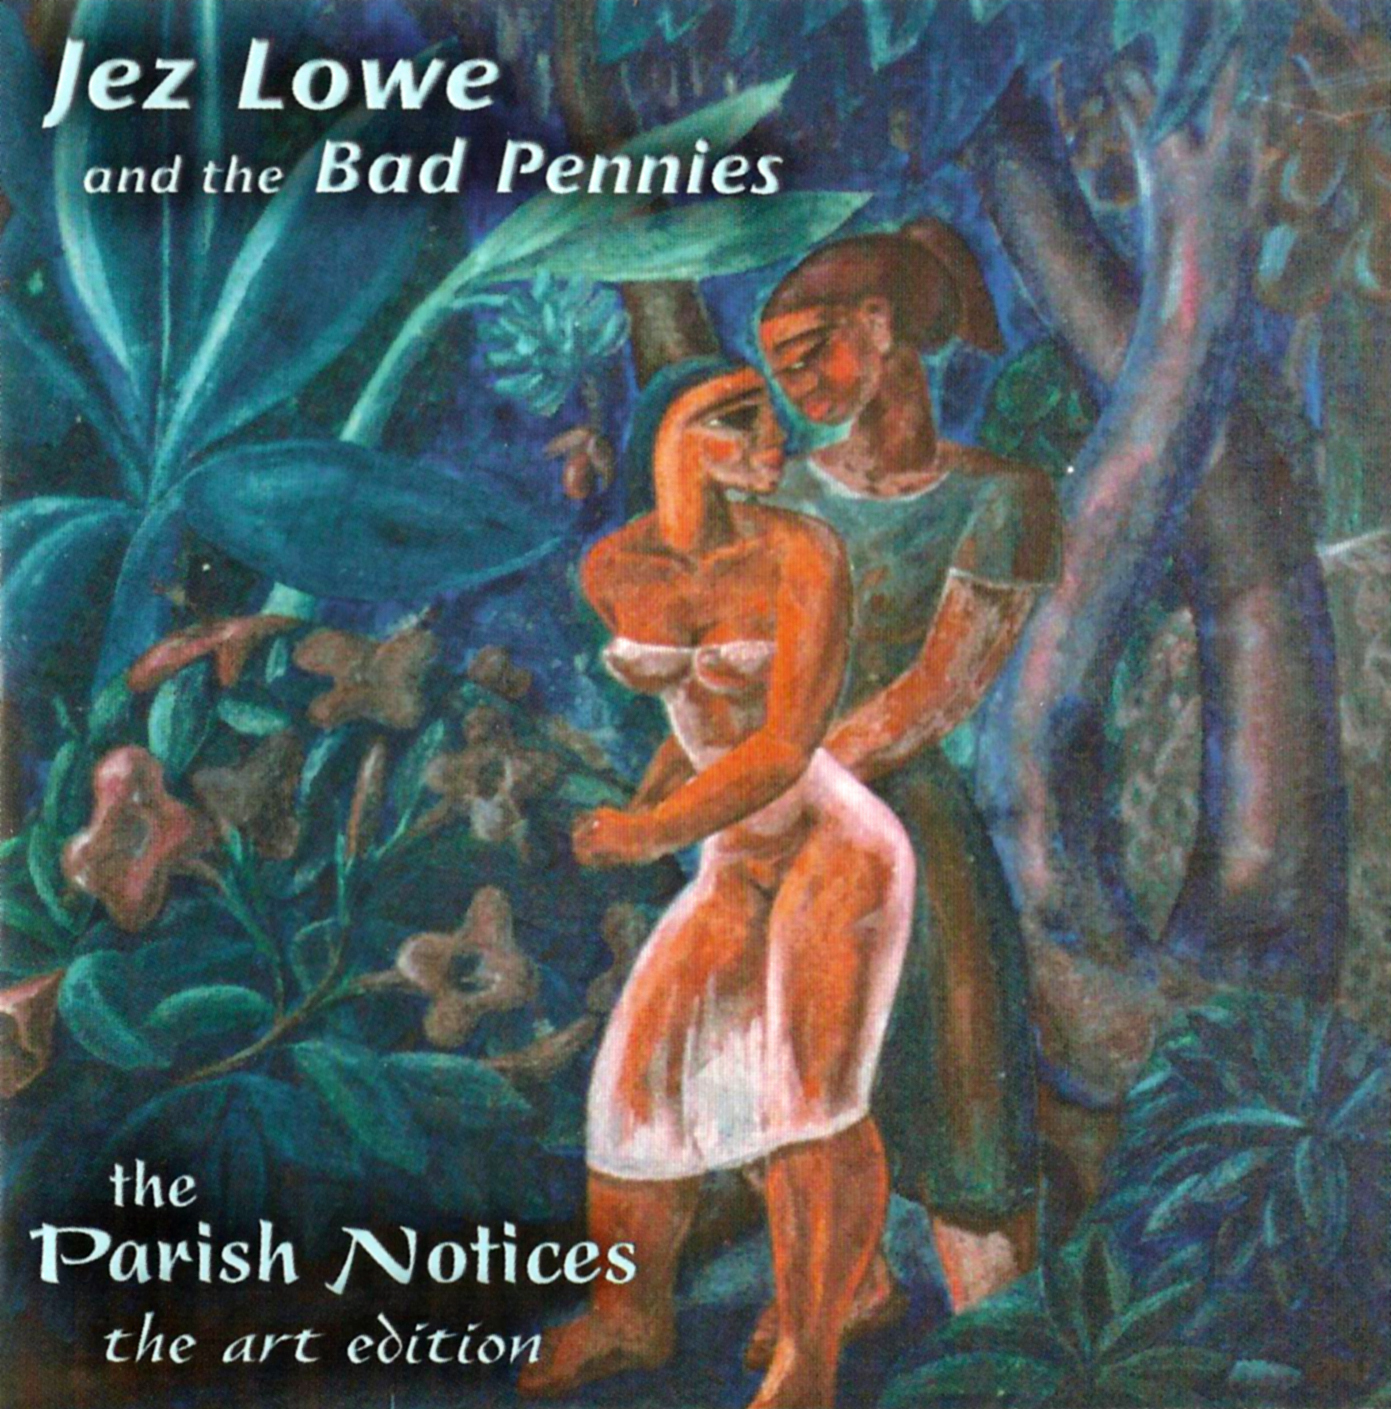 Album-Cover of the Parish Notes by Jez Lowe